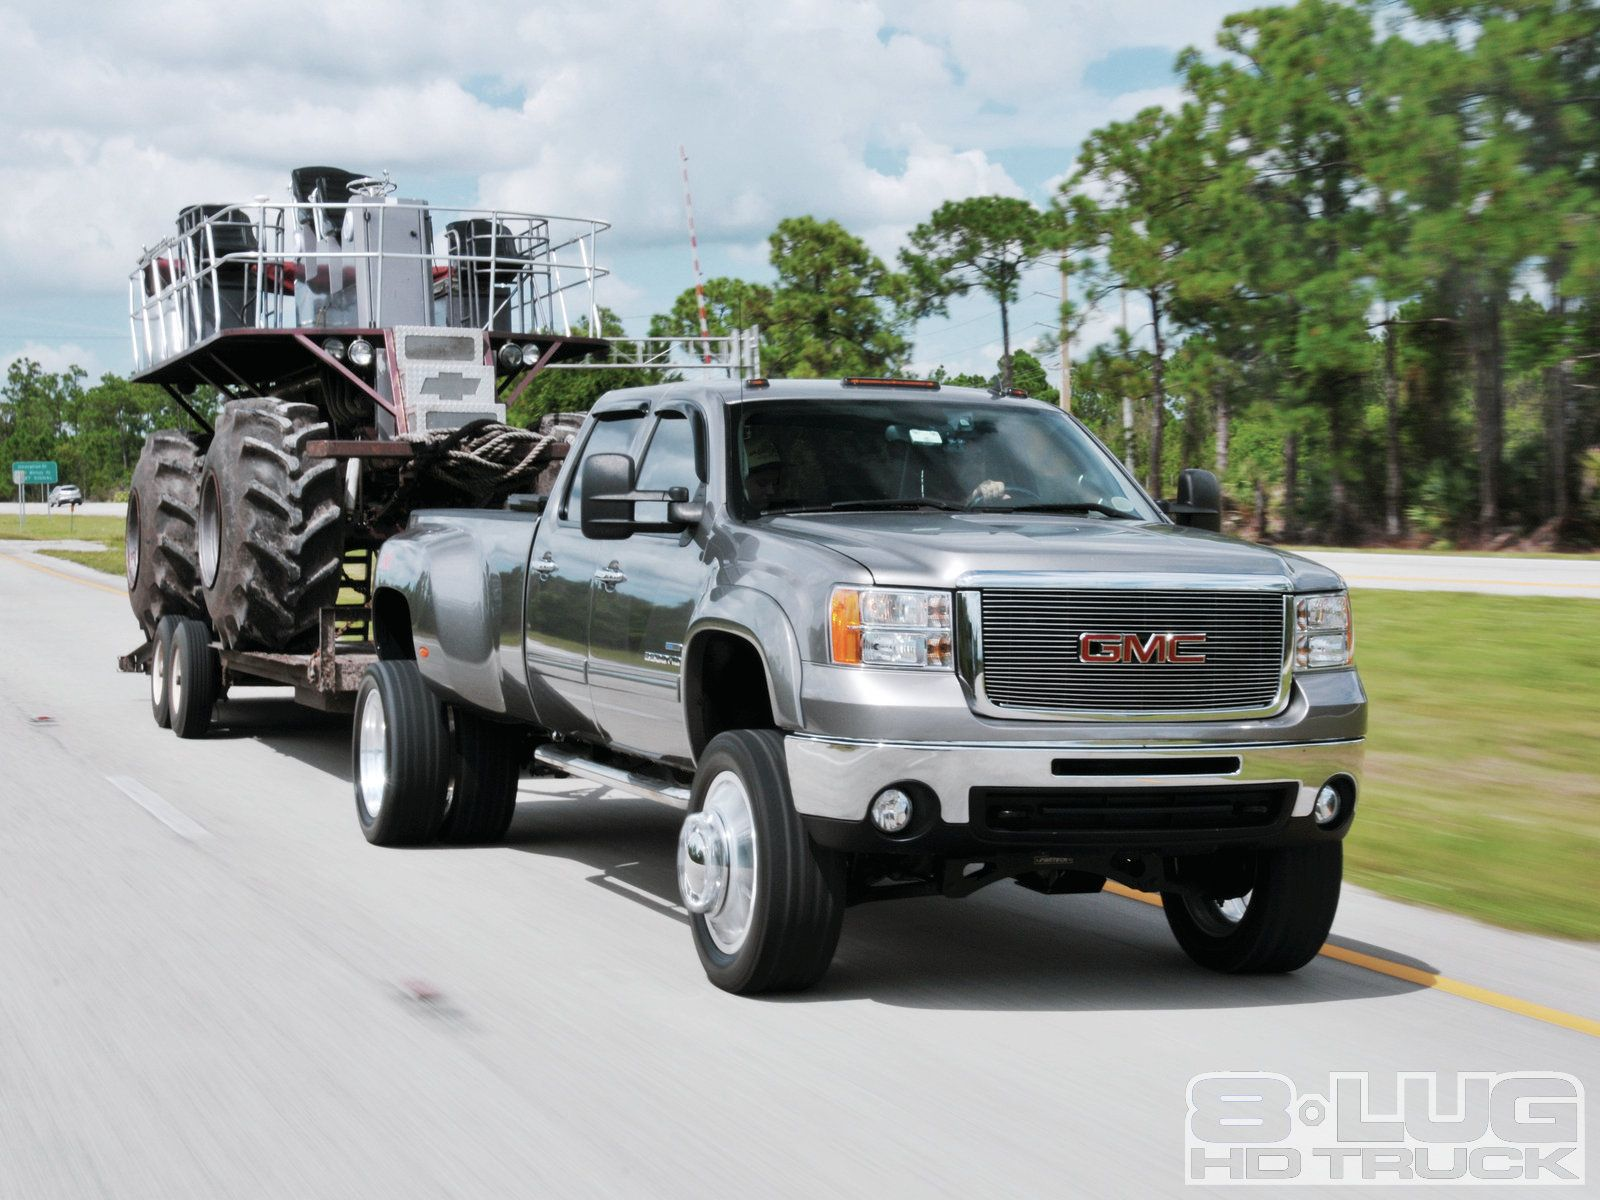 Tow Anything 2008 Gmc Sierra 3500 Work Truck Review 8 Lug Magazine Trucks Gmc Vehicles Gmc Sierra